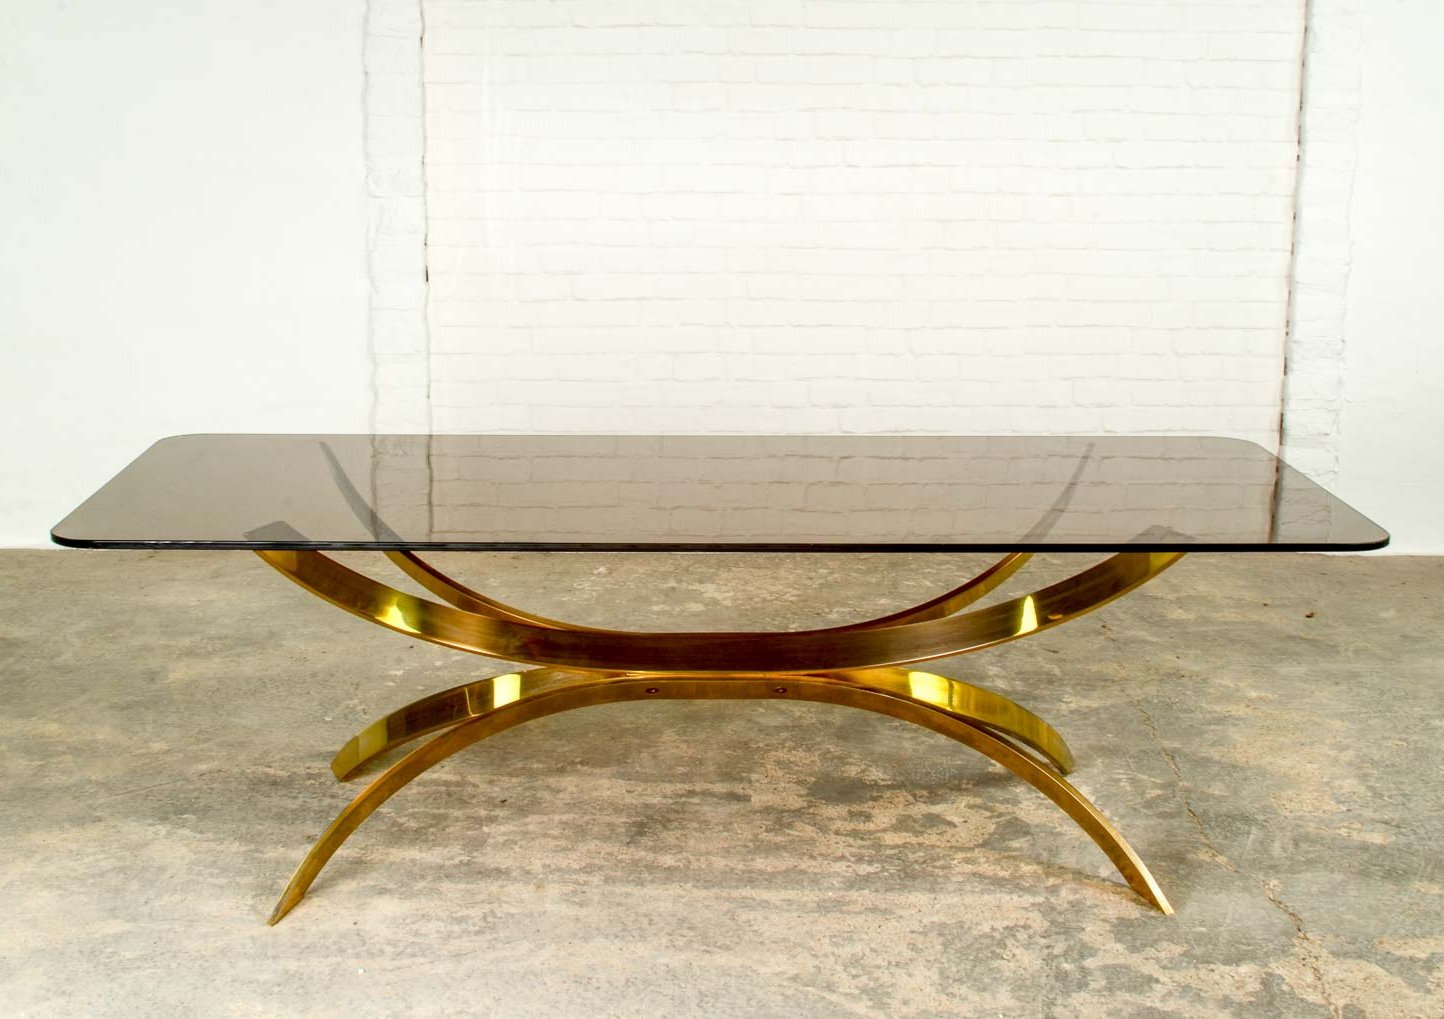 Italian Glass Coffee Table.Mid Century Italian Design Sculptured Brass Glass Coffee Table 1970s